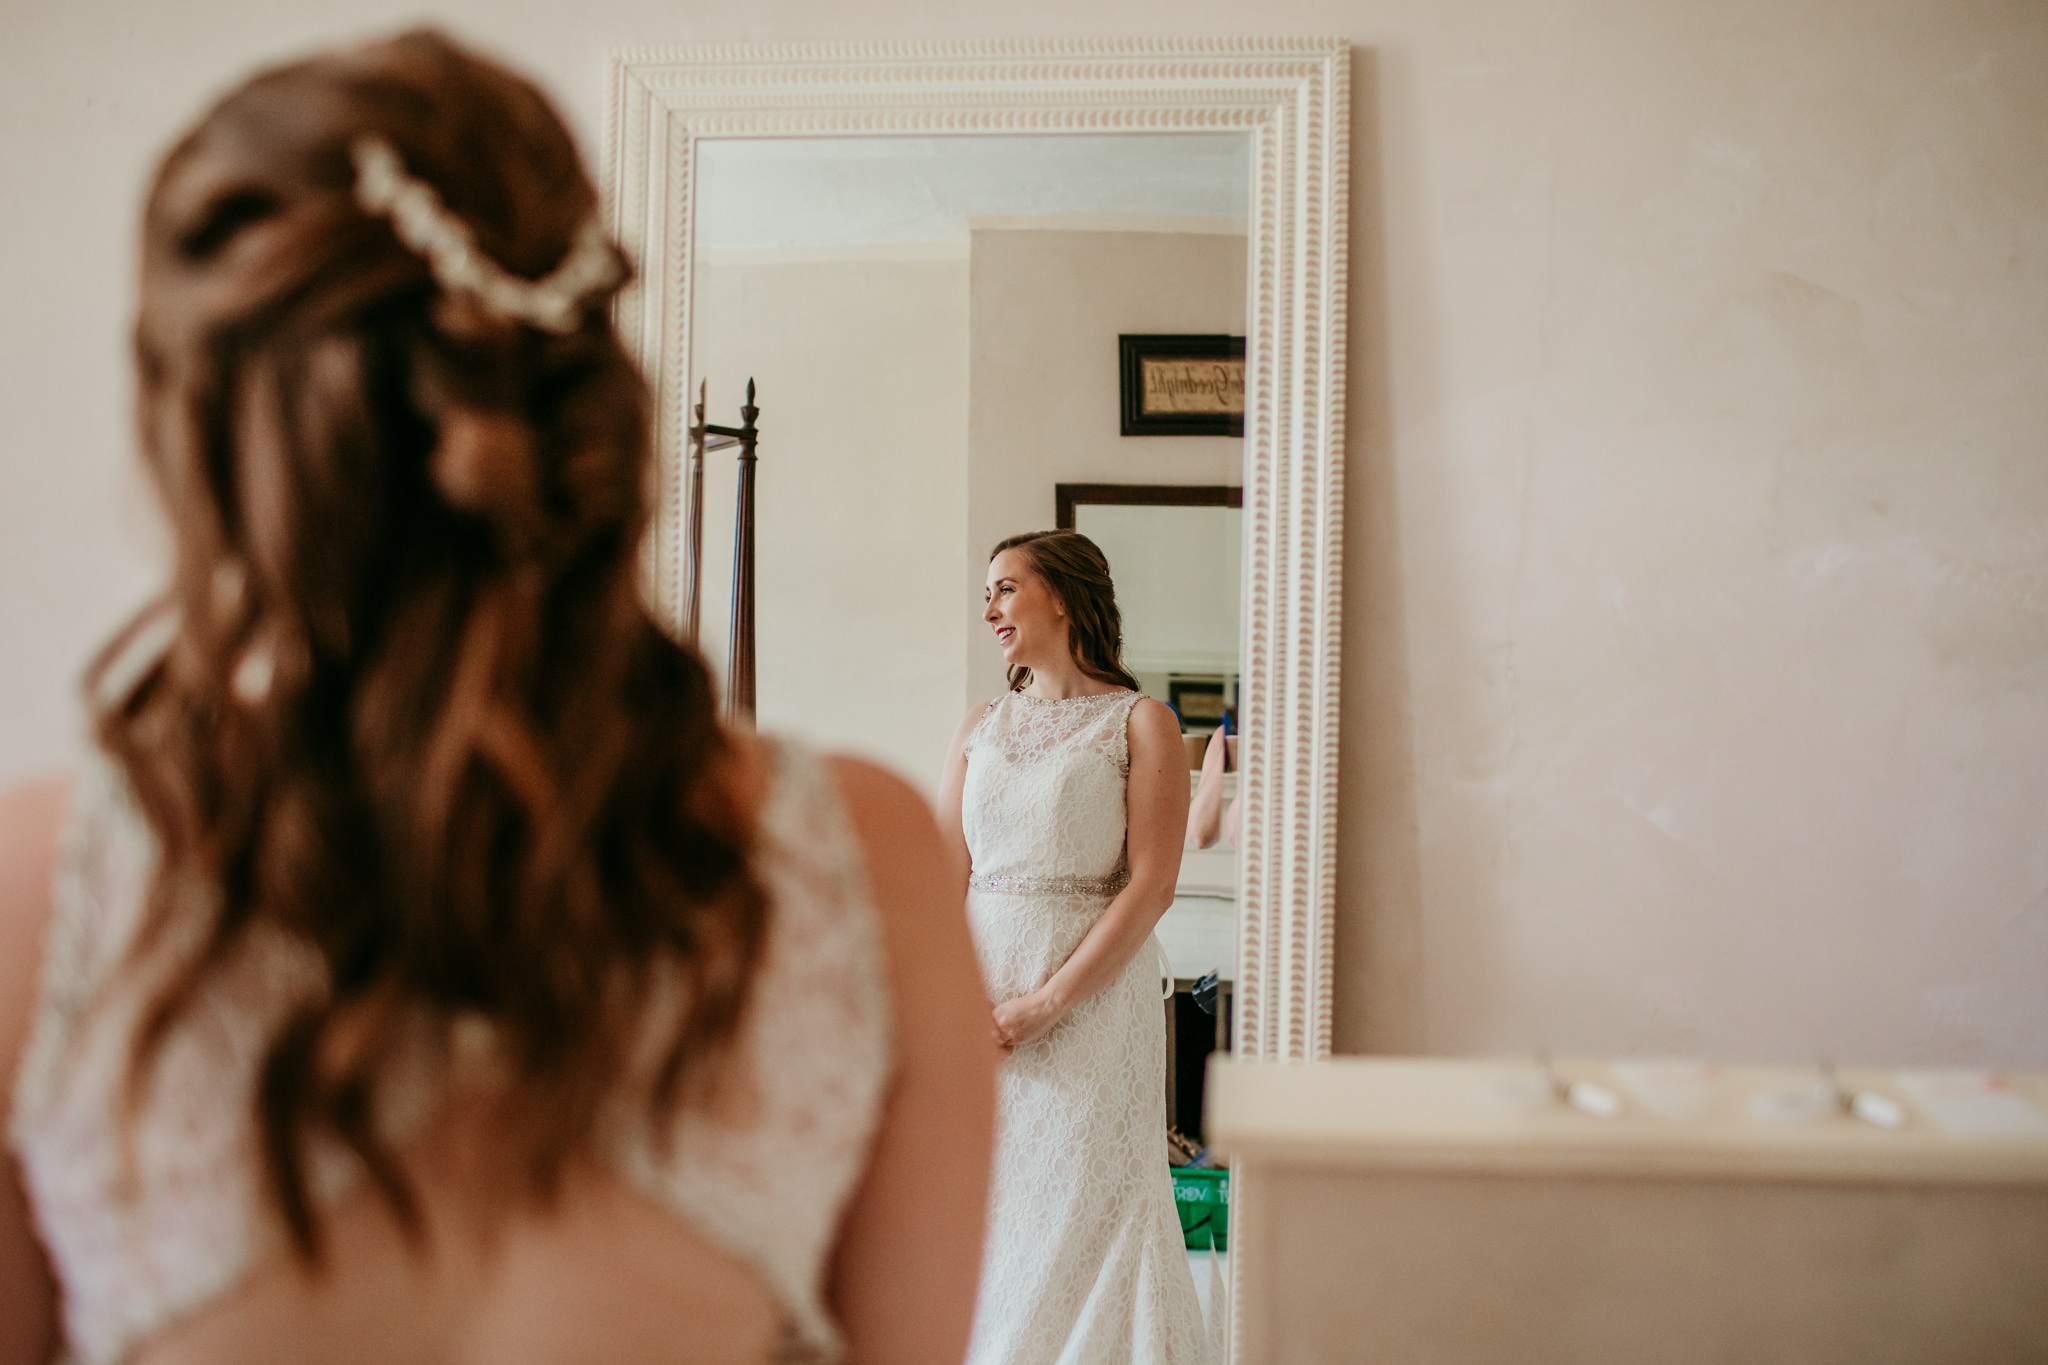 bride smiling to the side of the frame dressed in her wedding dress with reflection in the mirror